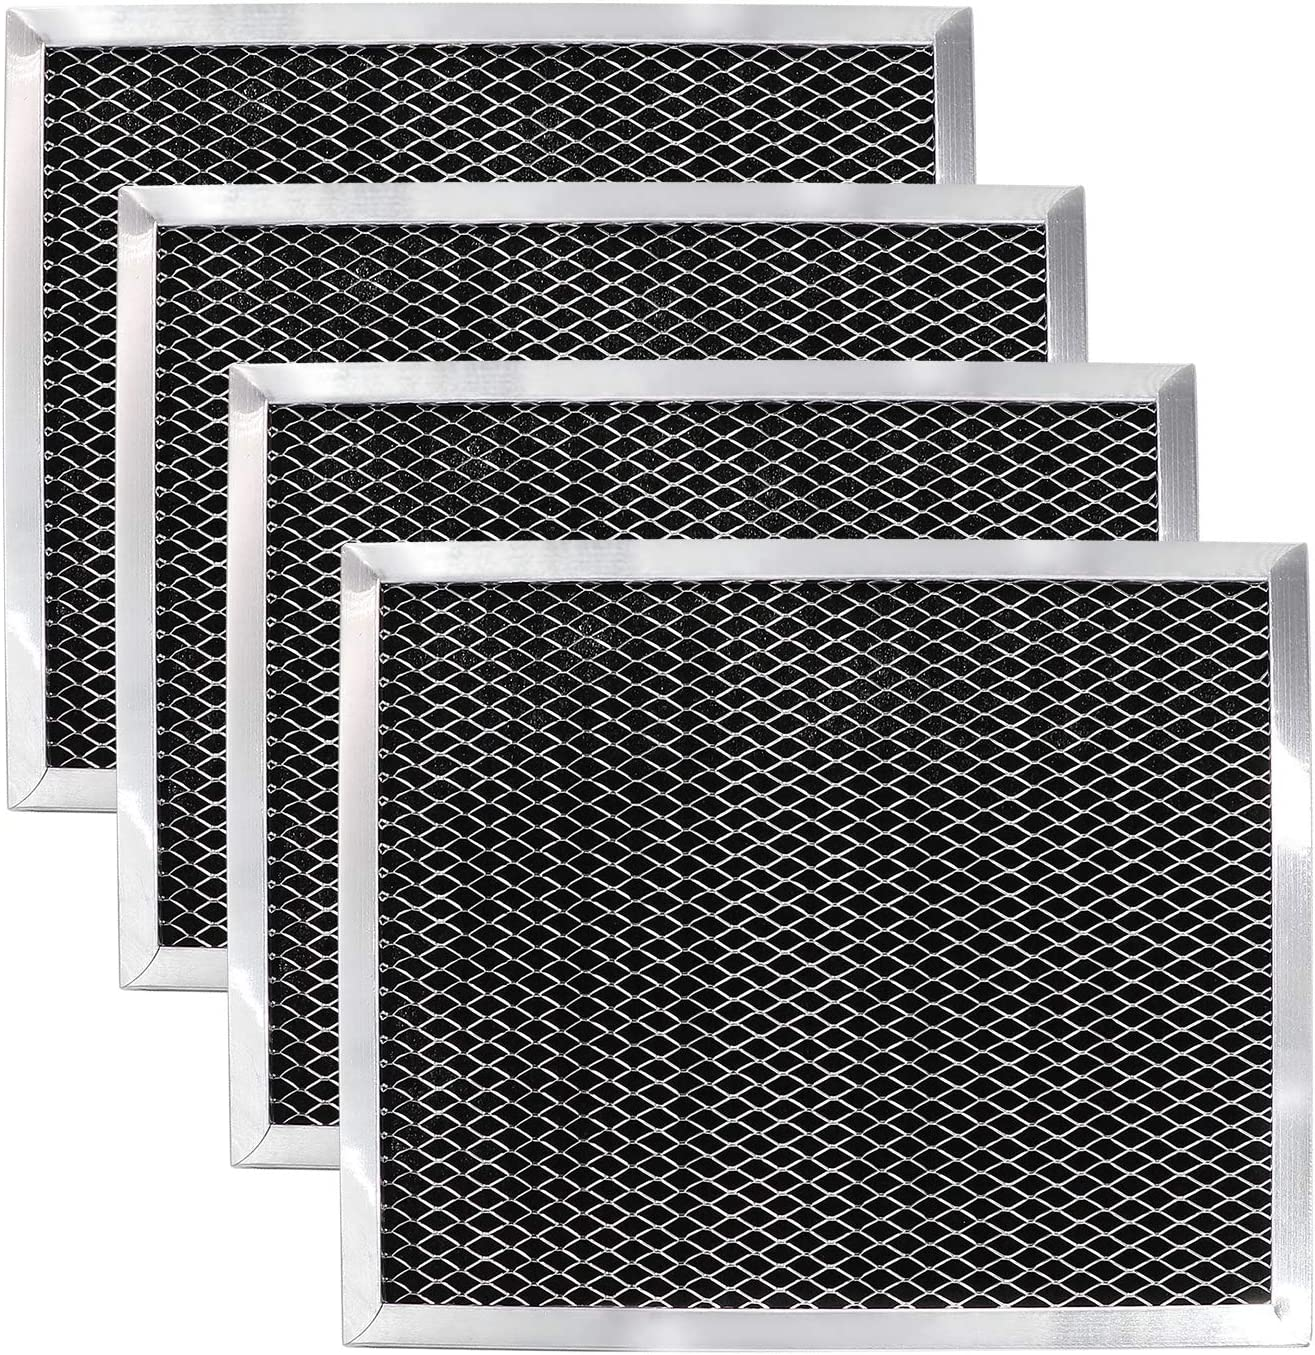 Primeswift Range Hood Charcoal Filter 97007696 Grease Filter (4 PK),Replacement for 832546,AP3140283,WB02X8253